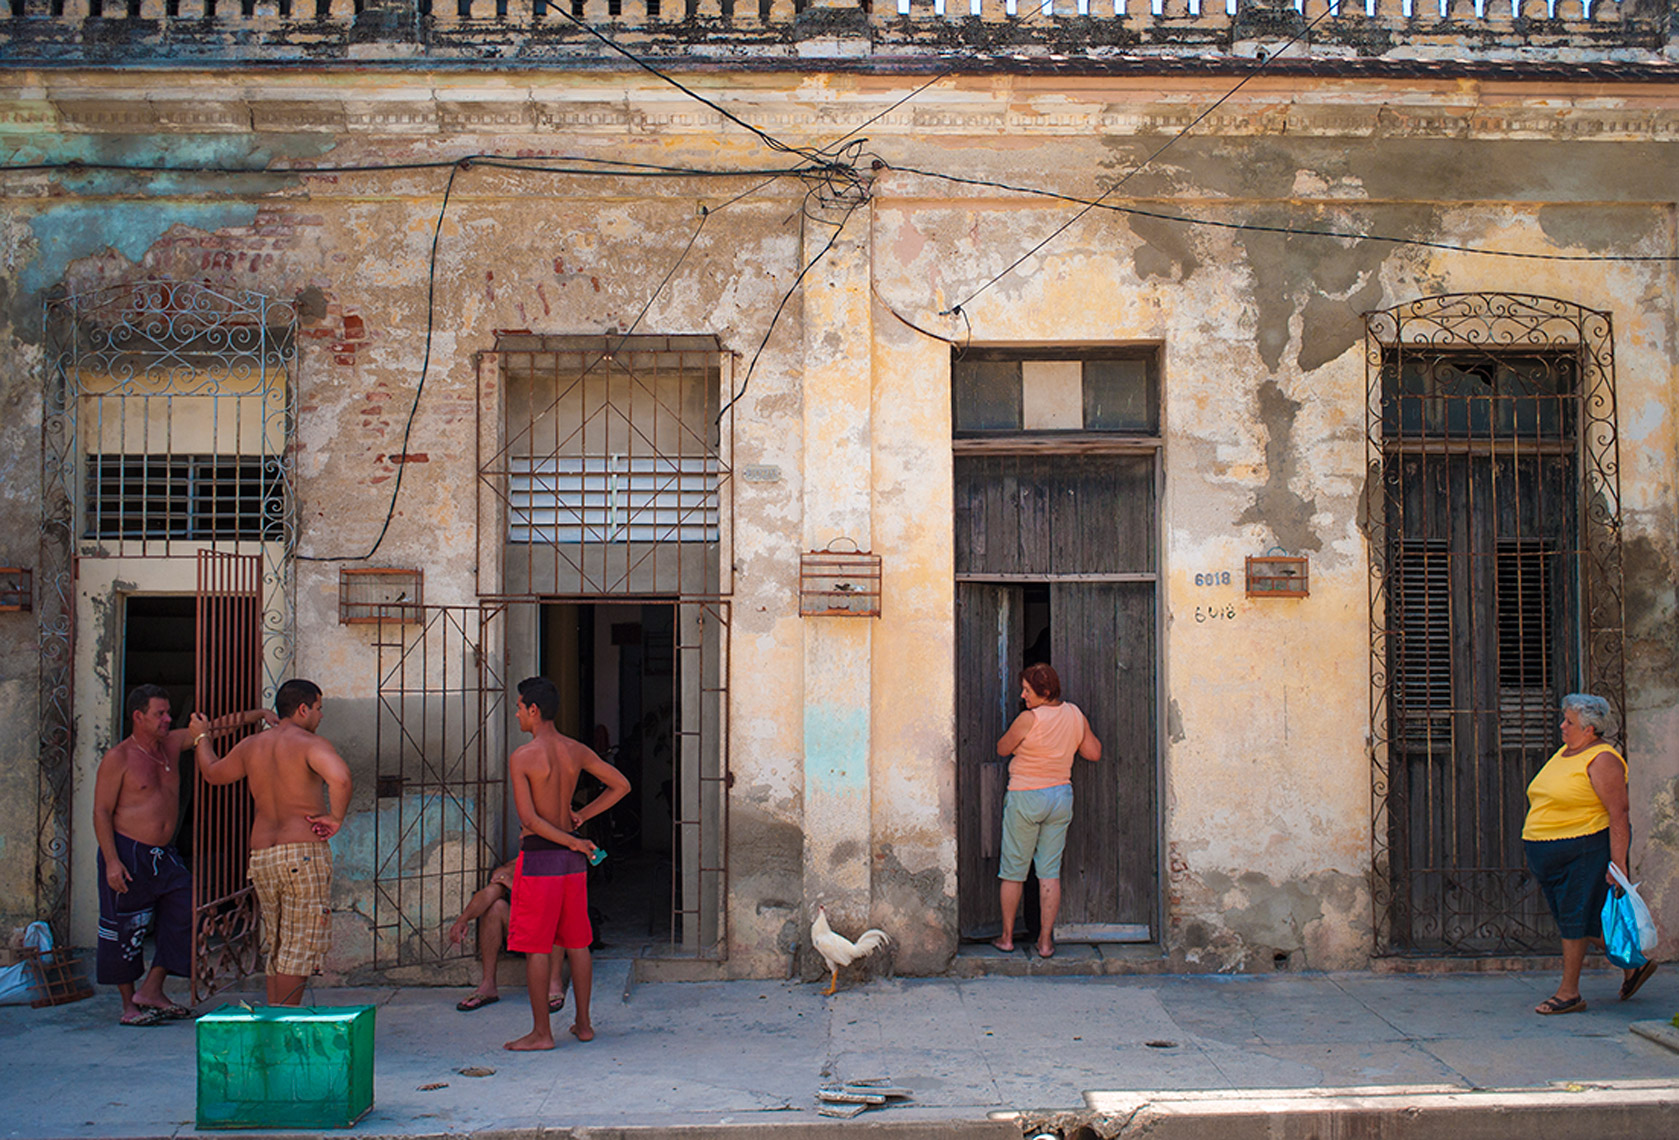 Waiting for the bus, Havana